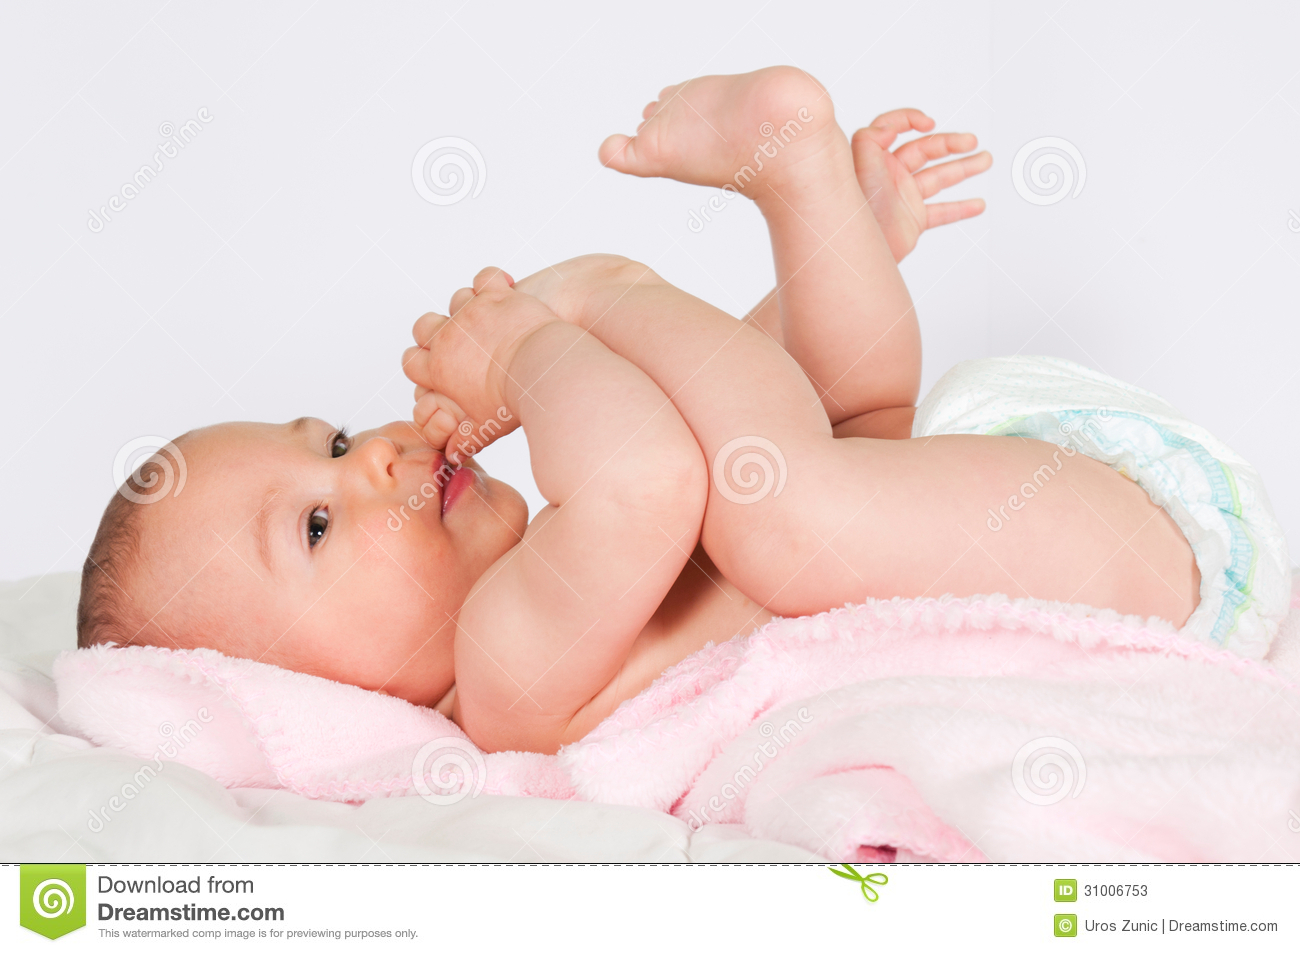 When trying to conceive a girl (in fact, when trying to have a child of a longed-for gender, be it female or male), the first step is to choose a method of human sex selection that you will use in your attempt of predetermining the gender of your future offspring. The best method is the one that suits you best.